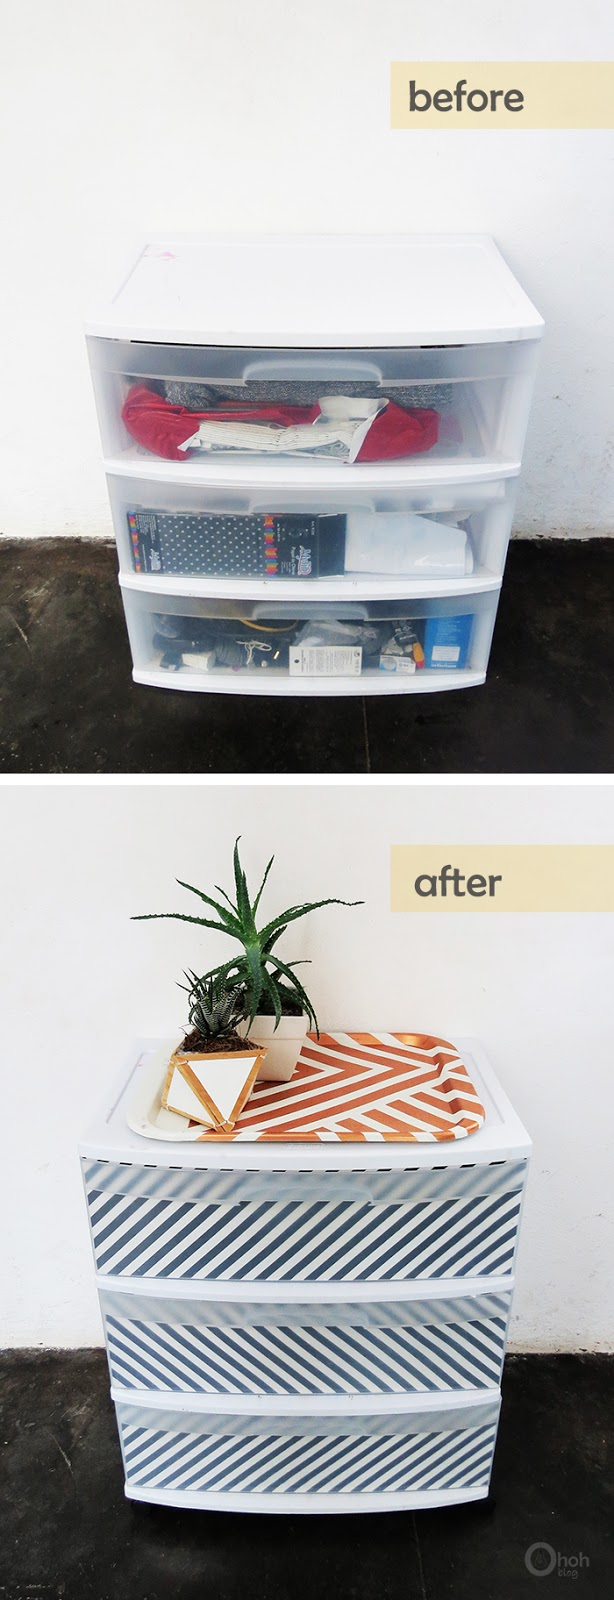 How to upgrade plastic drawers